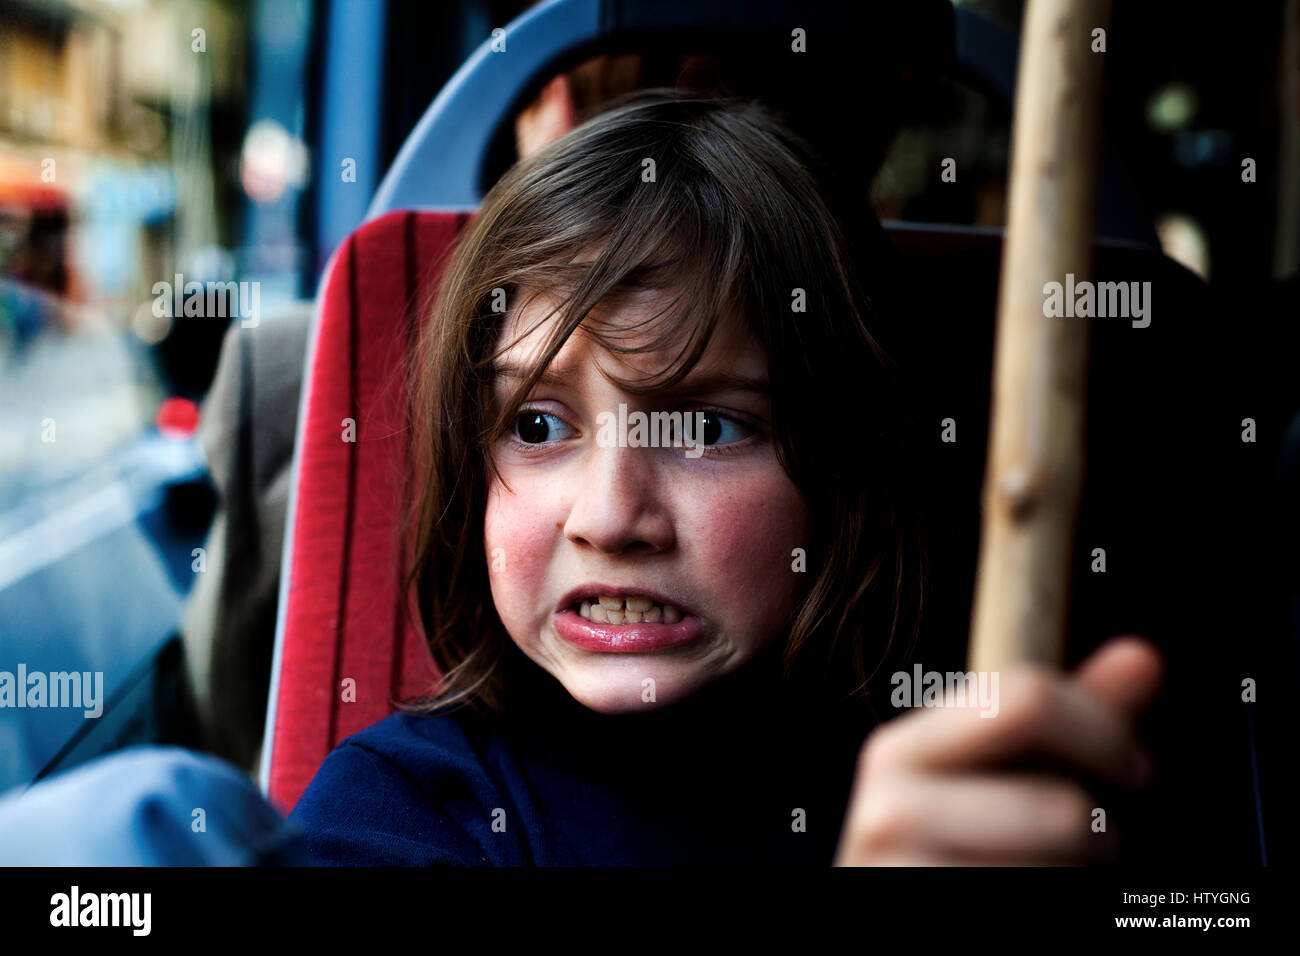 8 year old boy making an angry face whilst on the bus in Barcelona, Spain. - Stock Image